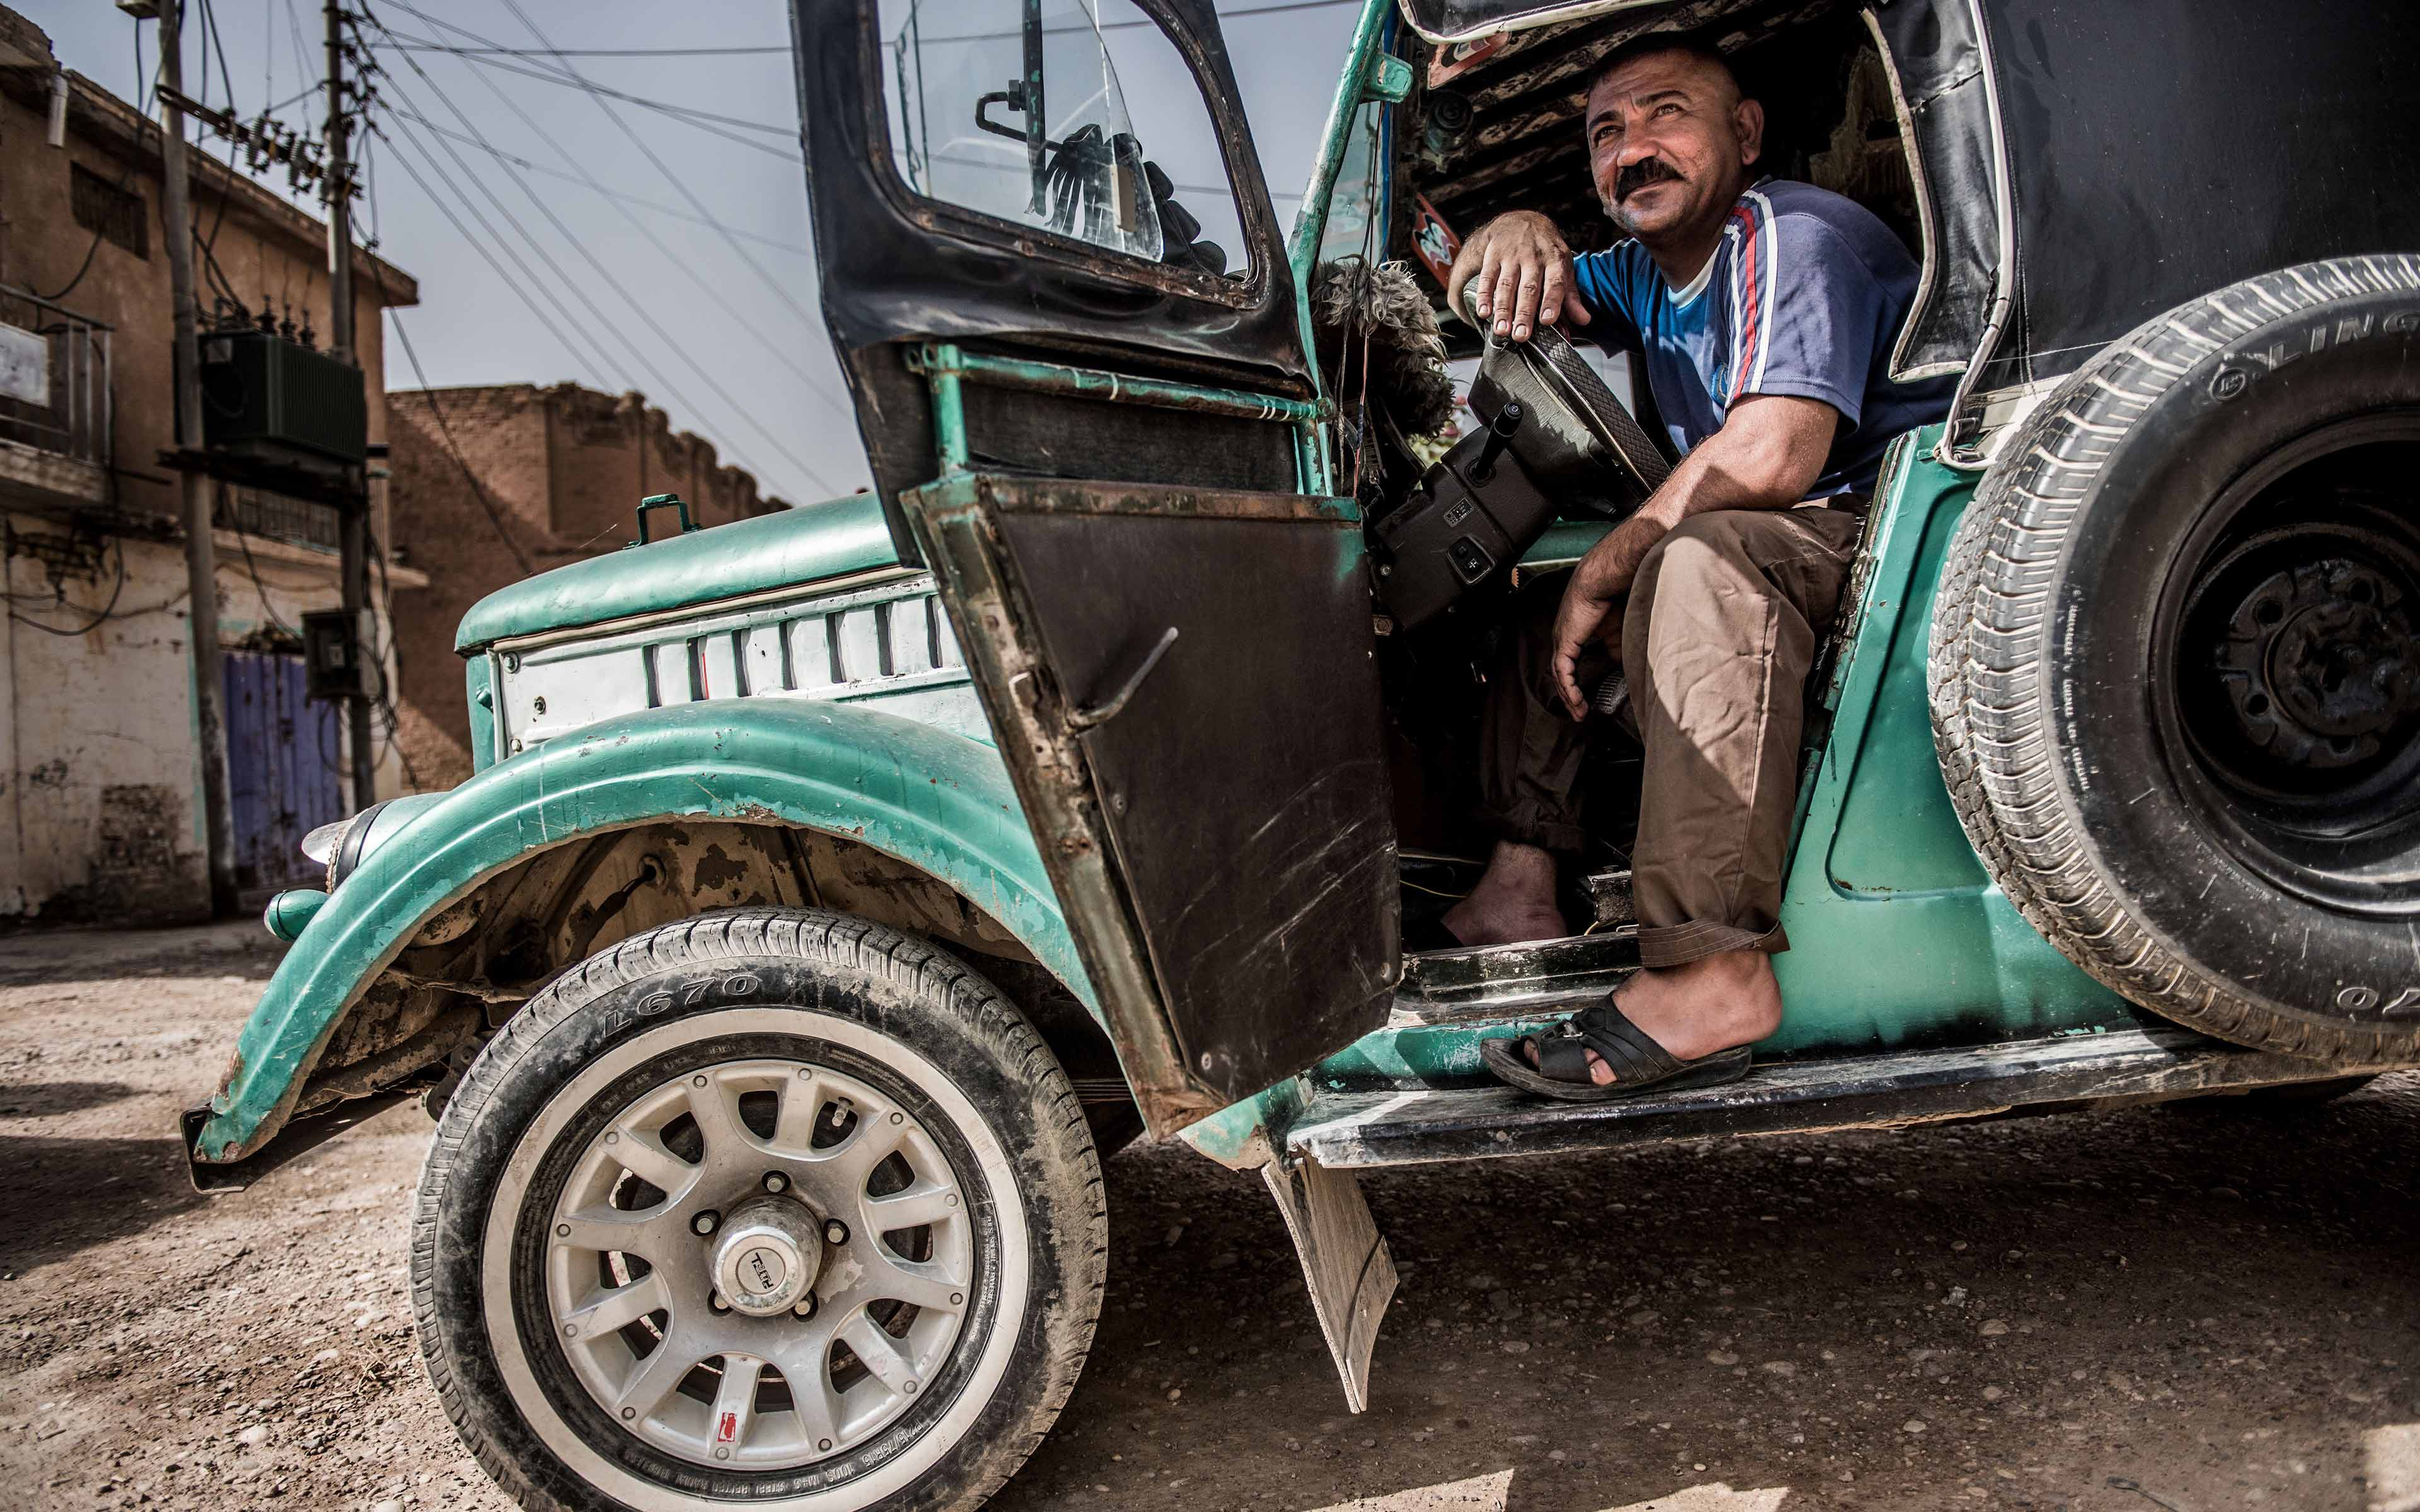 Ghasan Ali, whose name has been changed to protect his identity, sits inside his taxi in the Iraqi town of Saadiya. Though ISIS no longer occupies the community, many residents still have not returned and customers needing rides are infrequent.